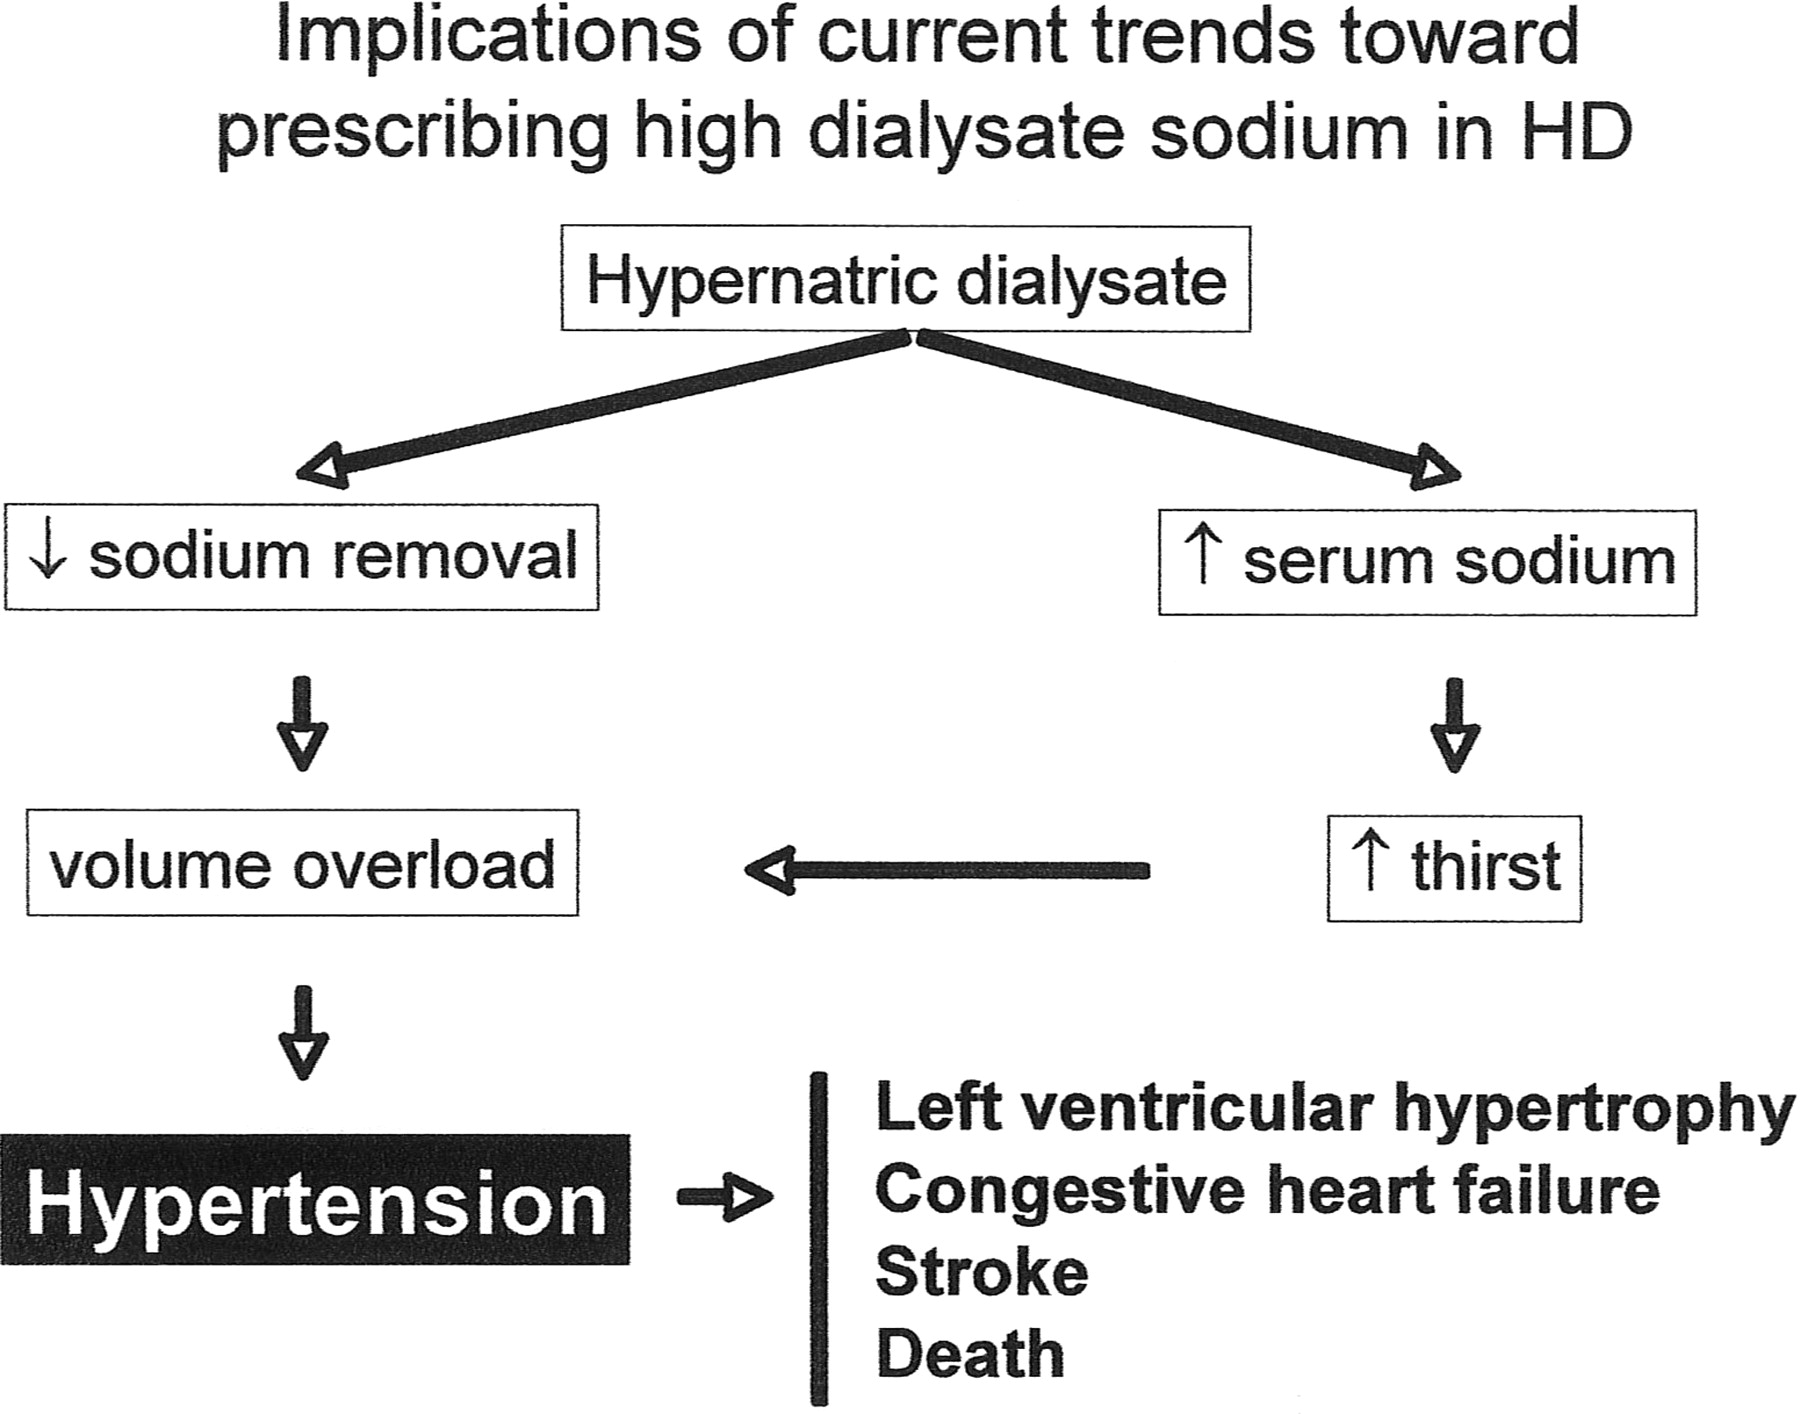 Revisiting The Dialysate Sodium Prescription As A Tool For Better Blood Pressure And Interdialytic Weight Gain Management In Hemodialysis Patients